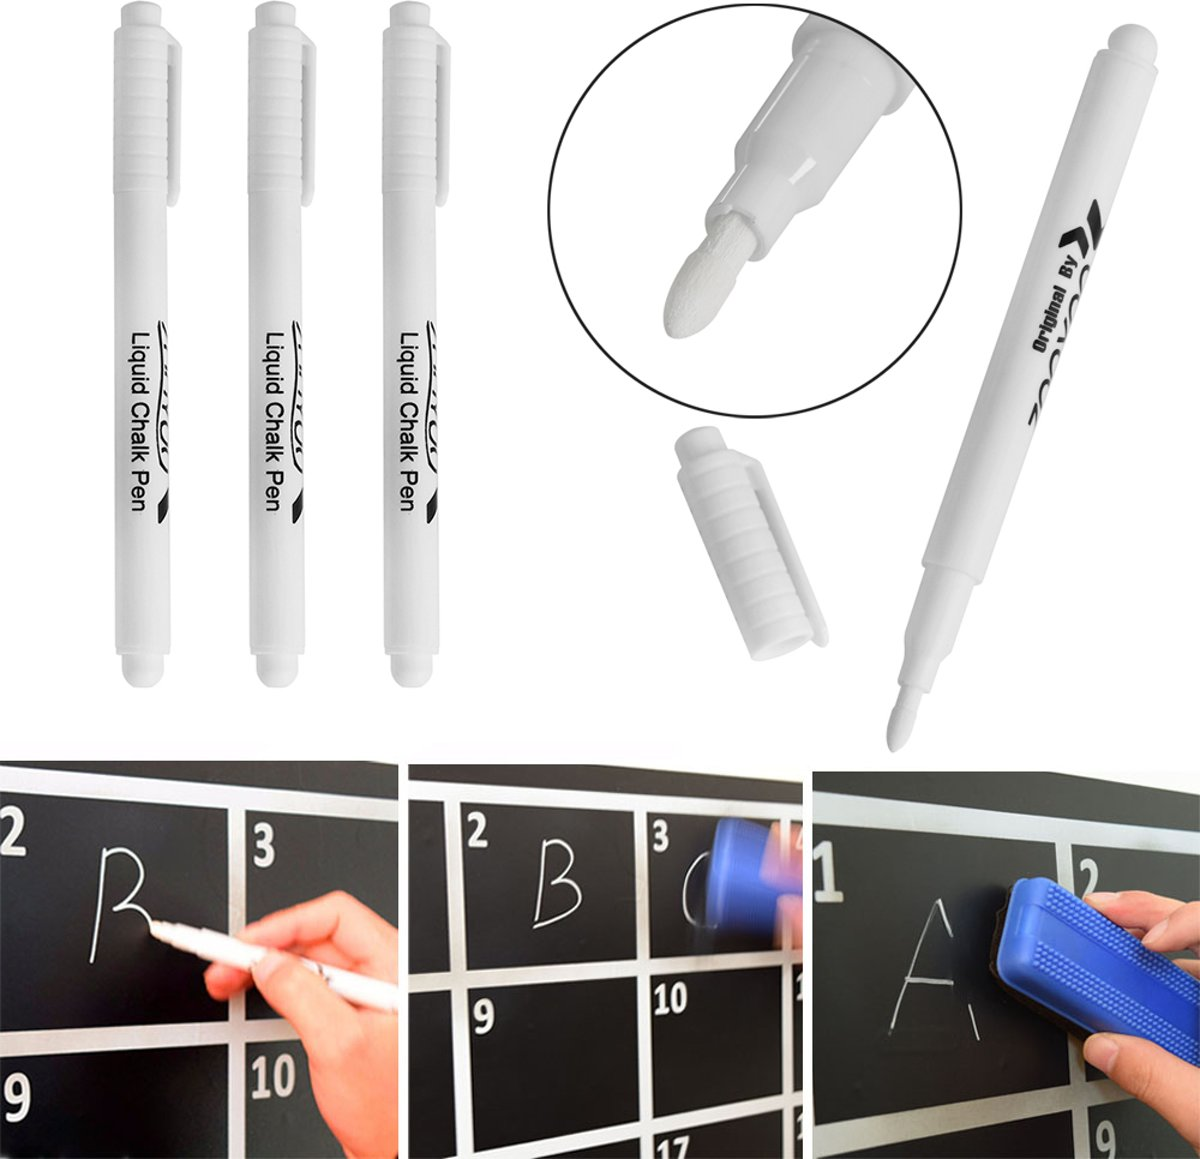 Pens that write on glass and wipe off caravan tow bar